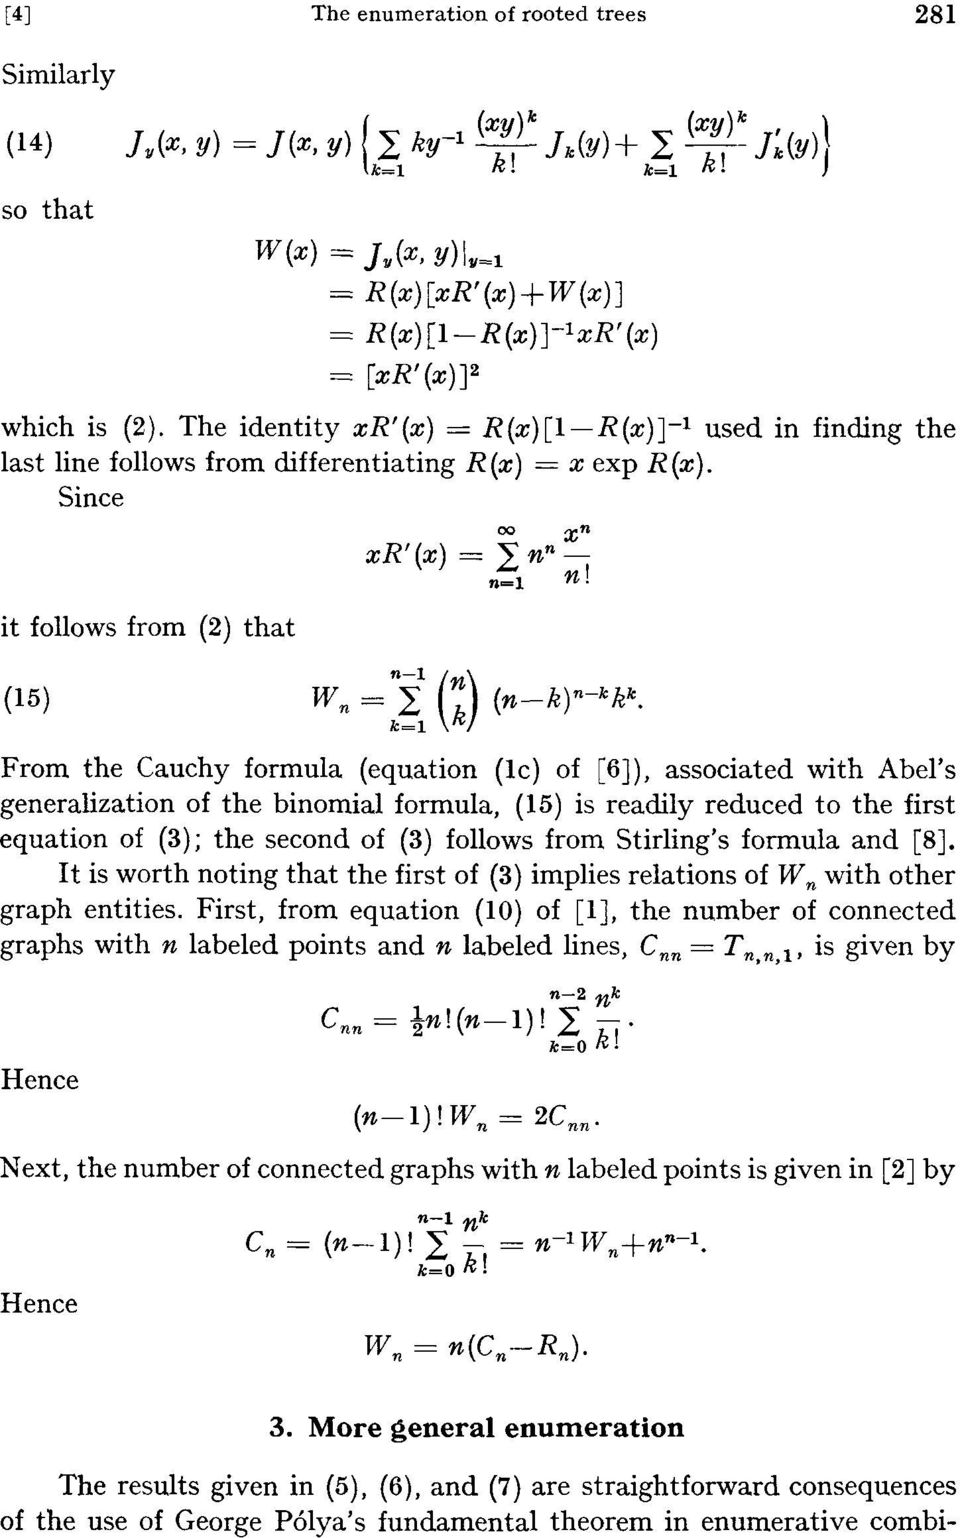 From the Cauchy formula (equation (lc) of [6]), associated with Abel's generalization of the binomial formula, (15) is readily reduced to the first equation of (3); the second of (3) follows from